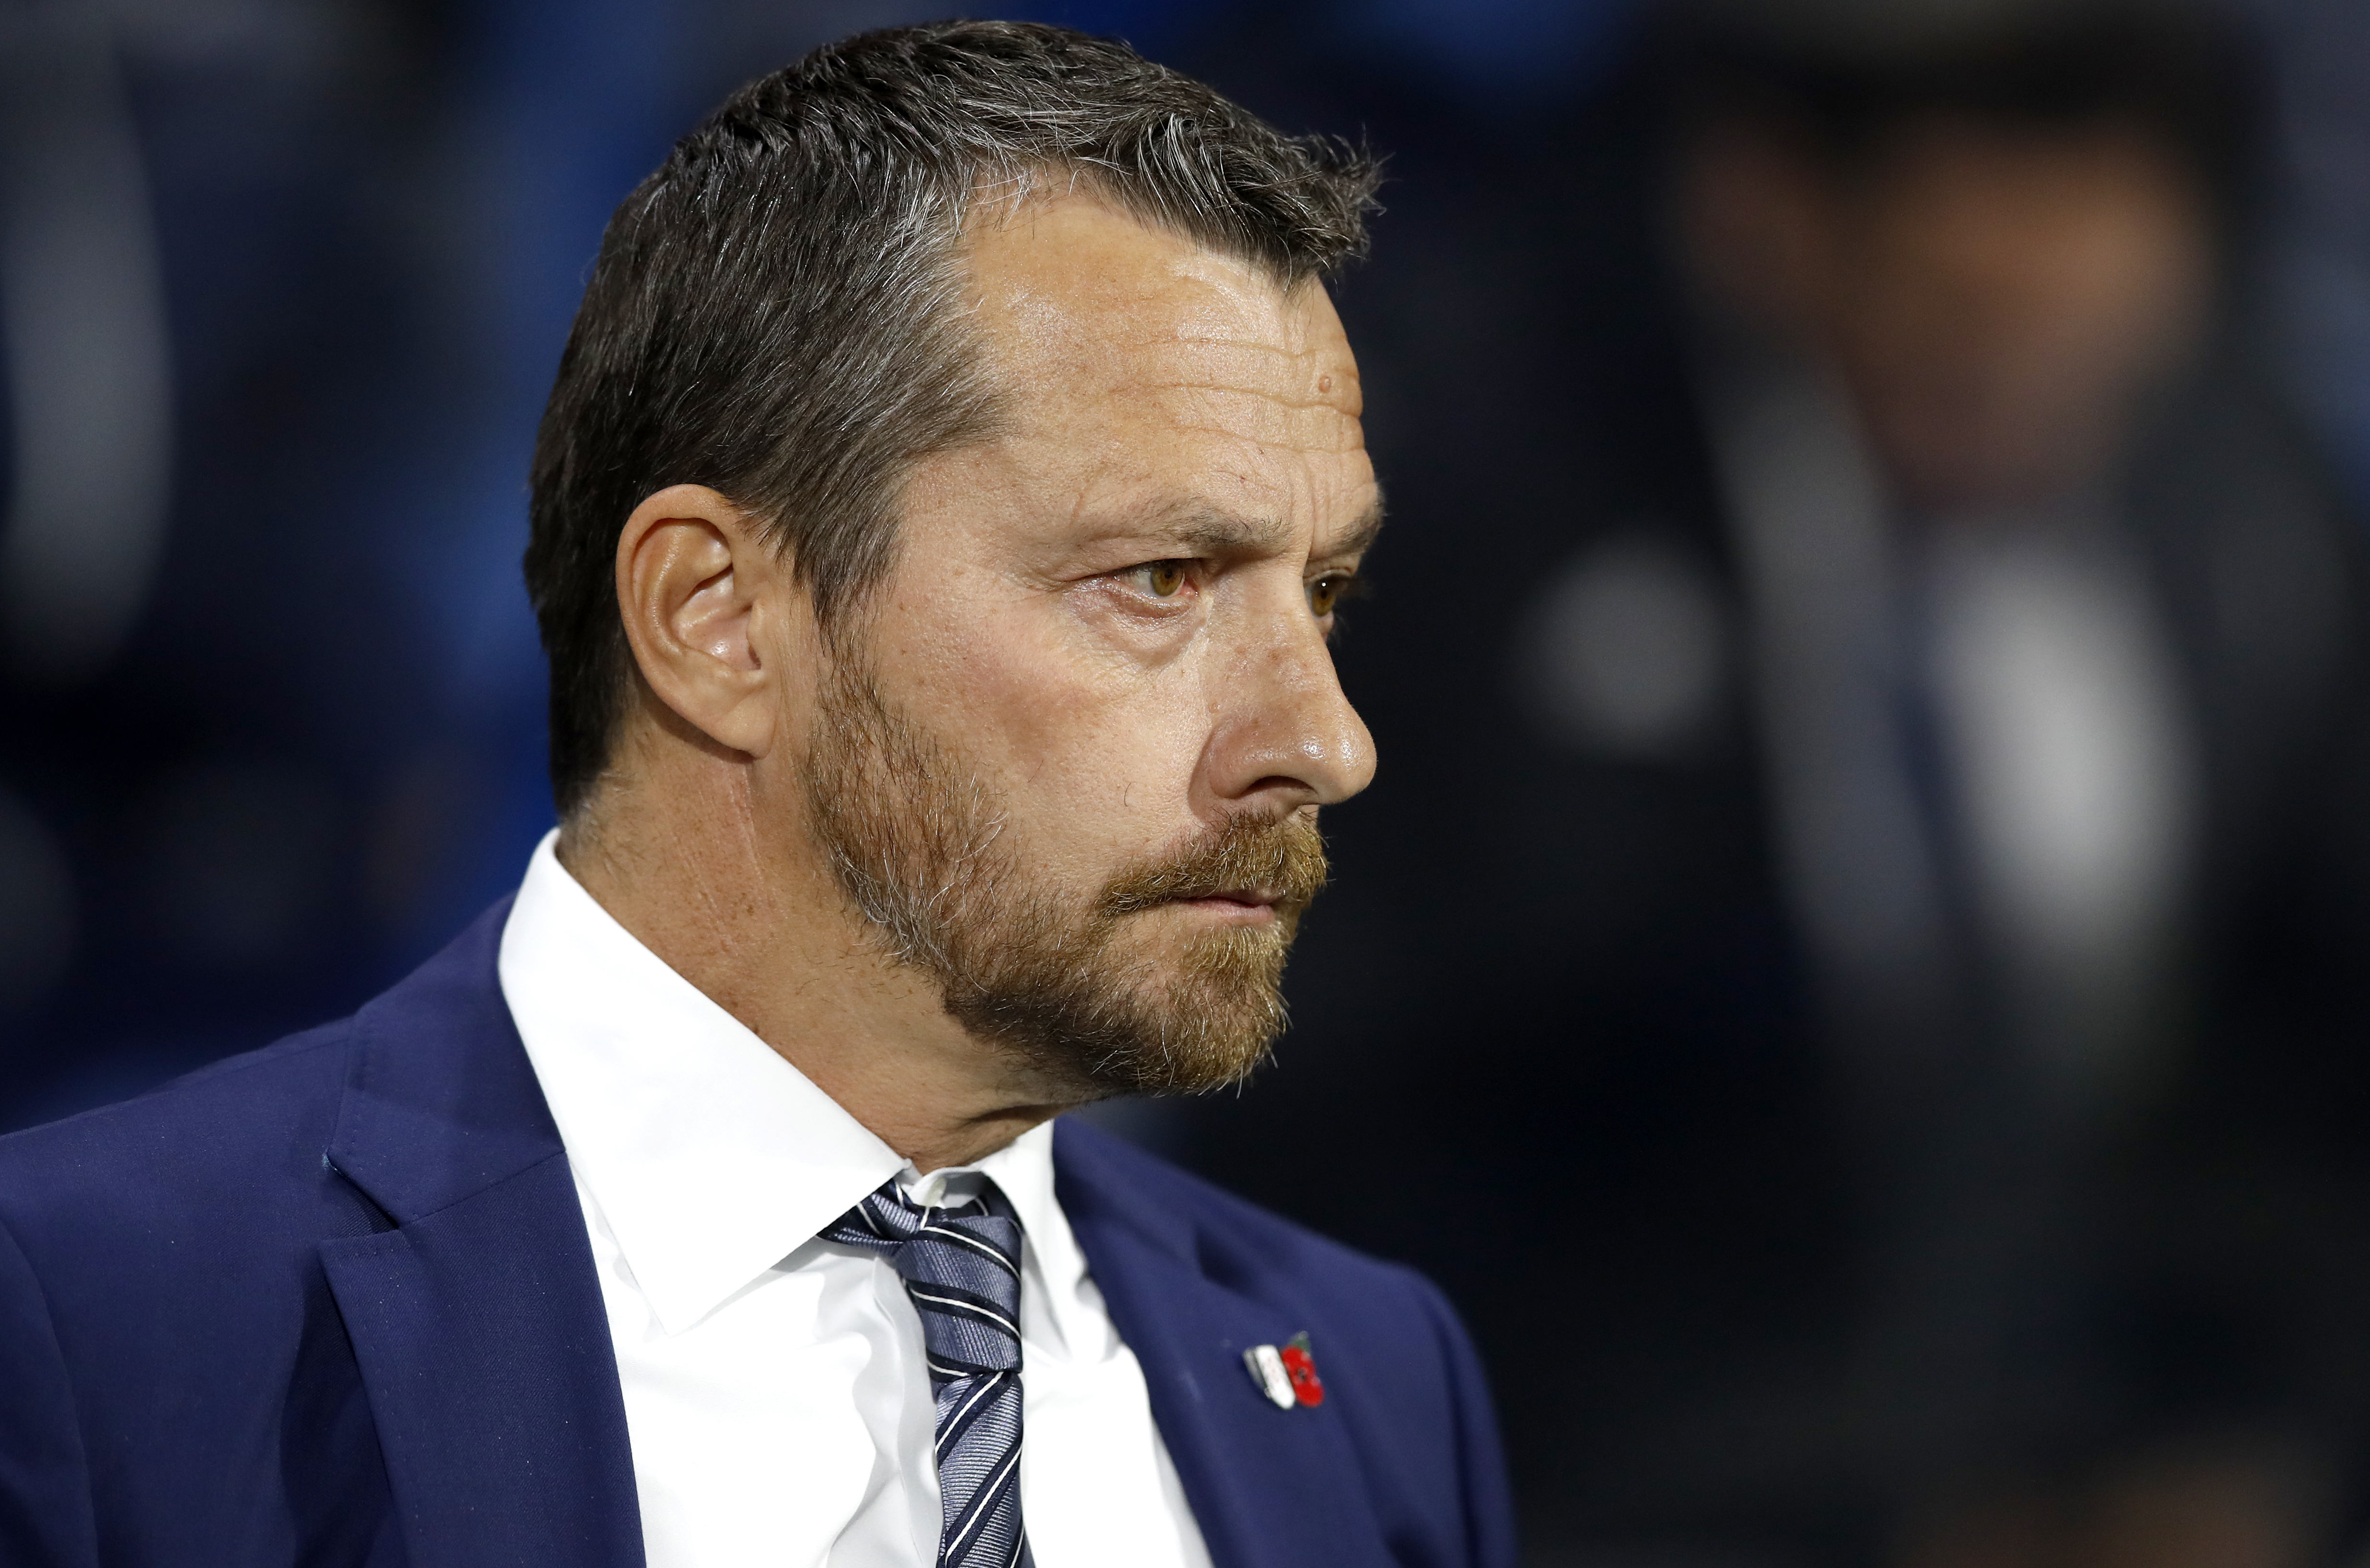 Things had been going dreadfully for Jokanovic. Image: PA Images